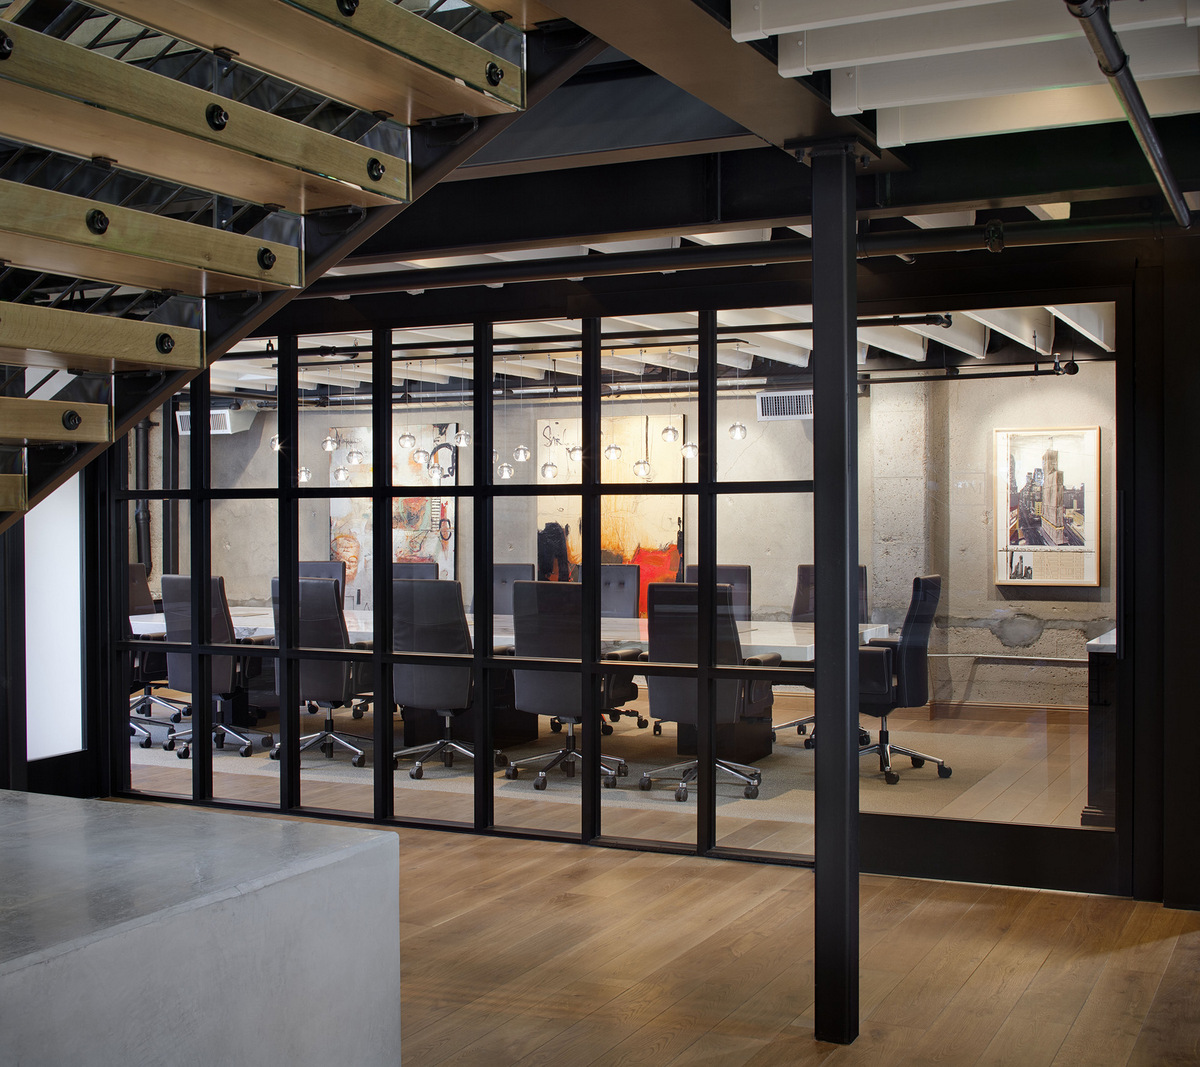 Dcoration De Bureau Comment Adopter Le Style Industriel